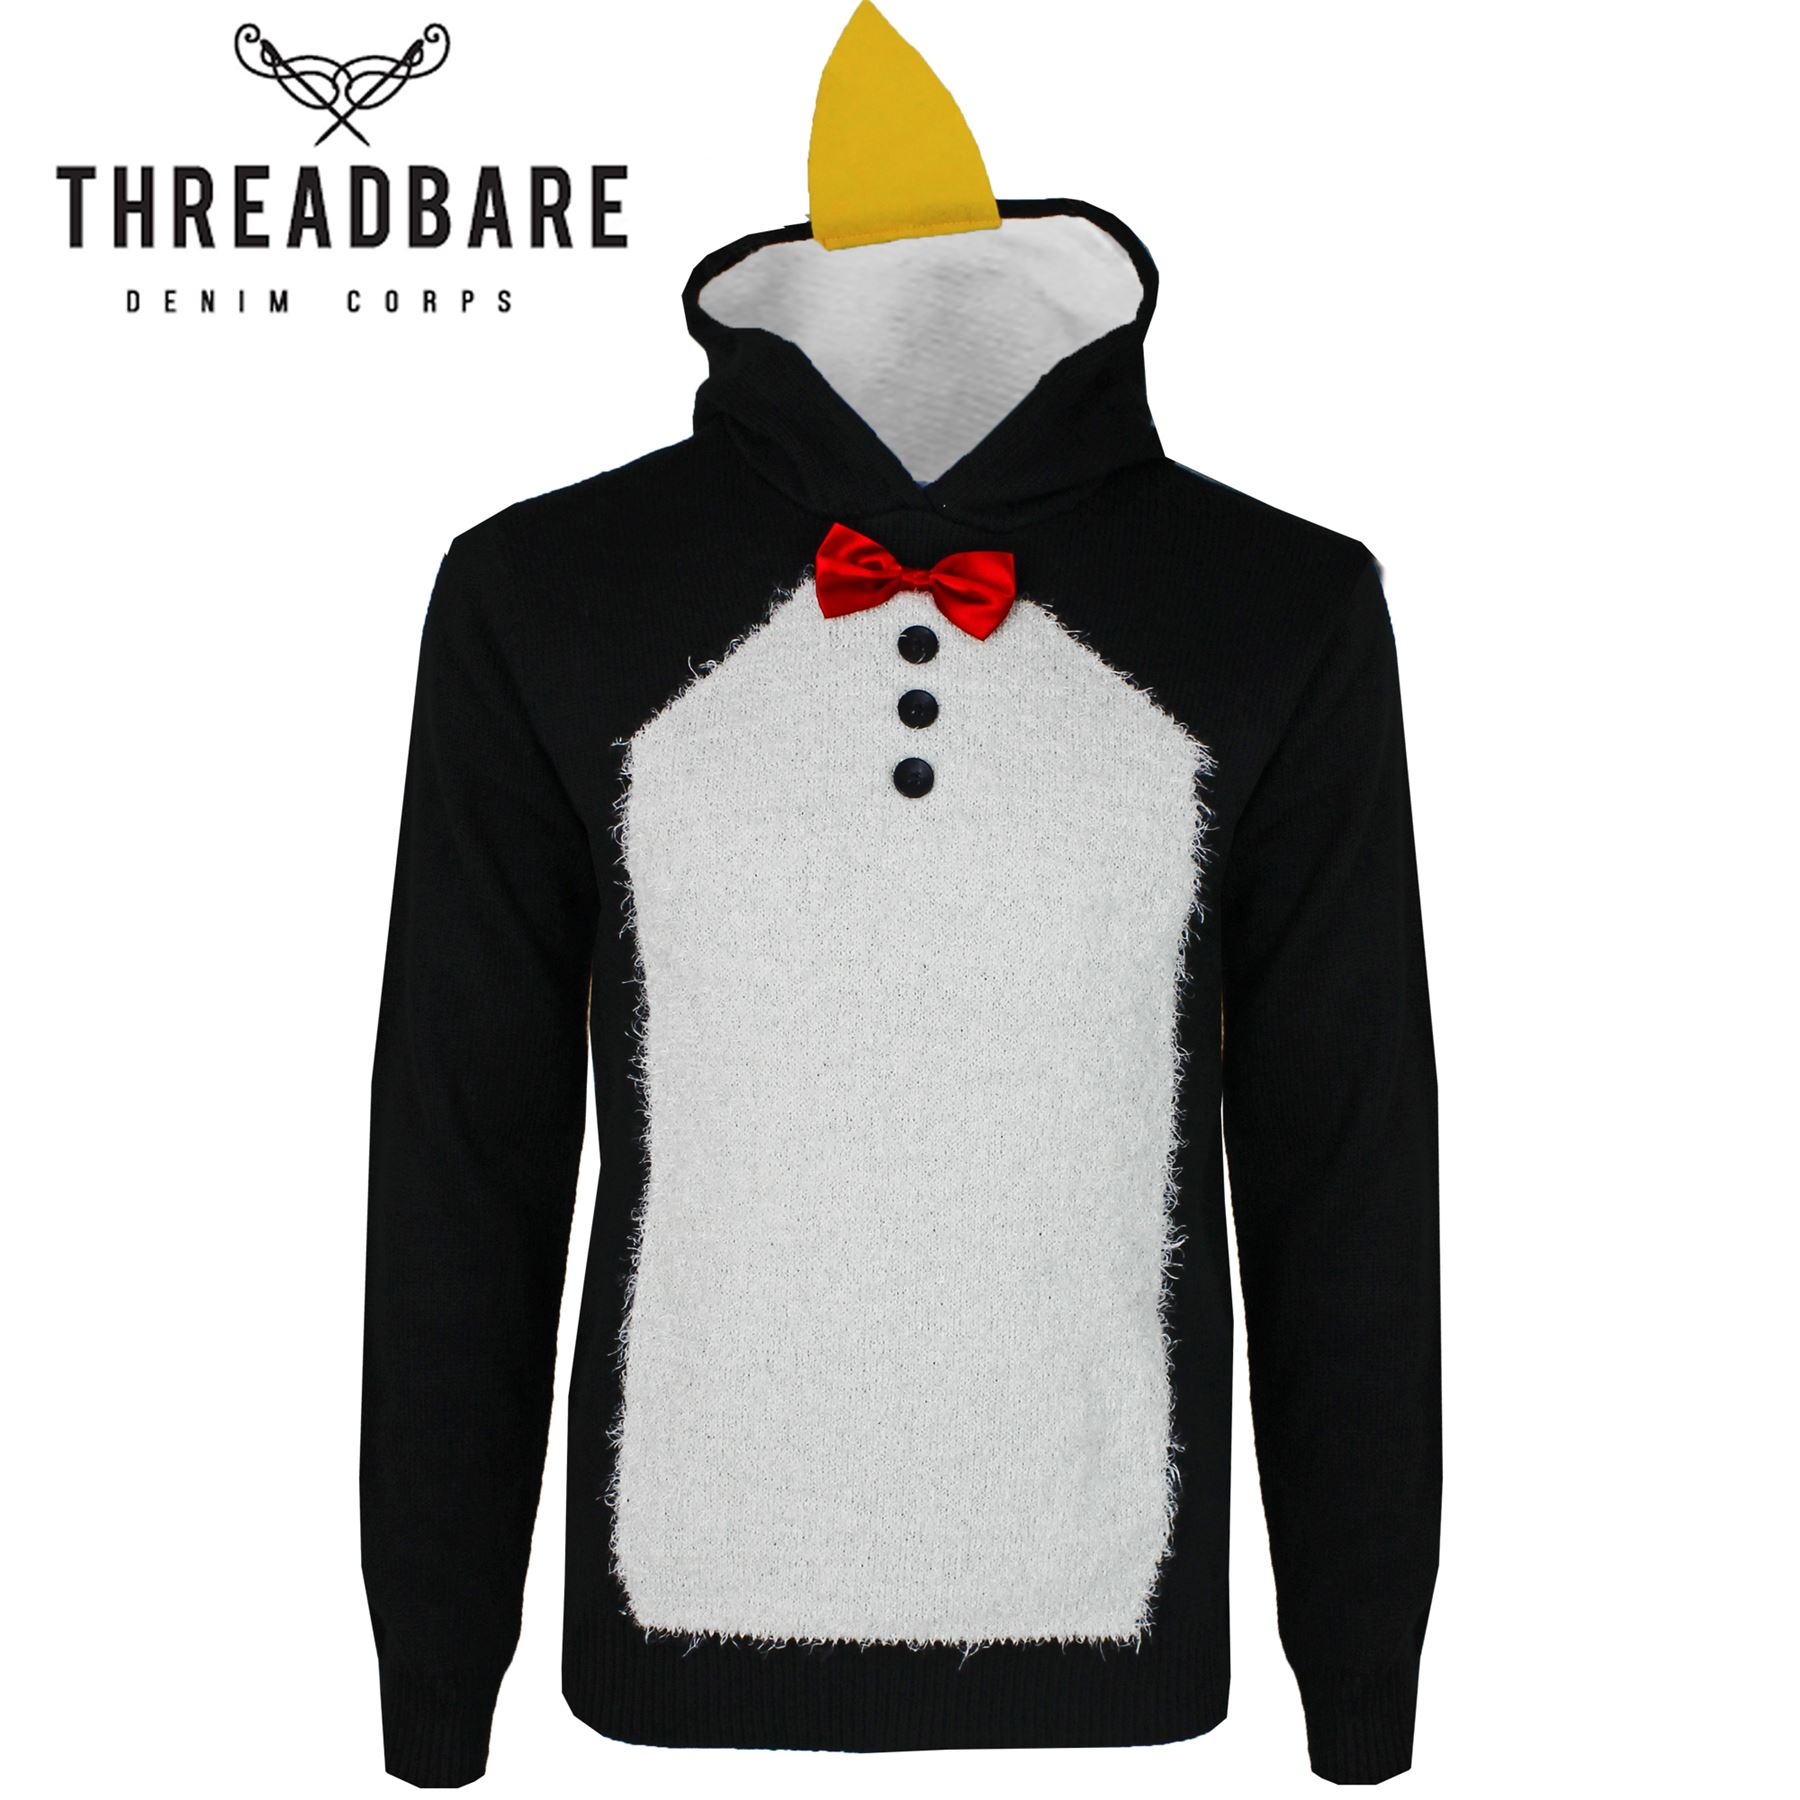 1ef8056c Details about Mens Threadbare Penguin Costume Christmas 3D Jumper Novelty Xmas  Hoodie Sweater